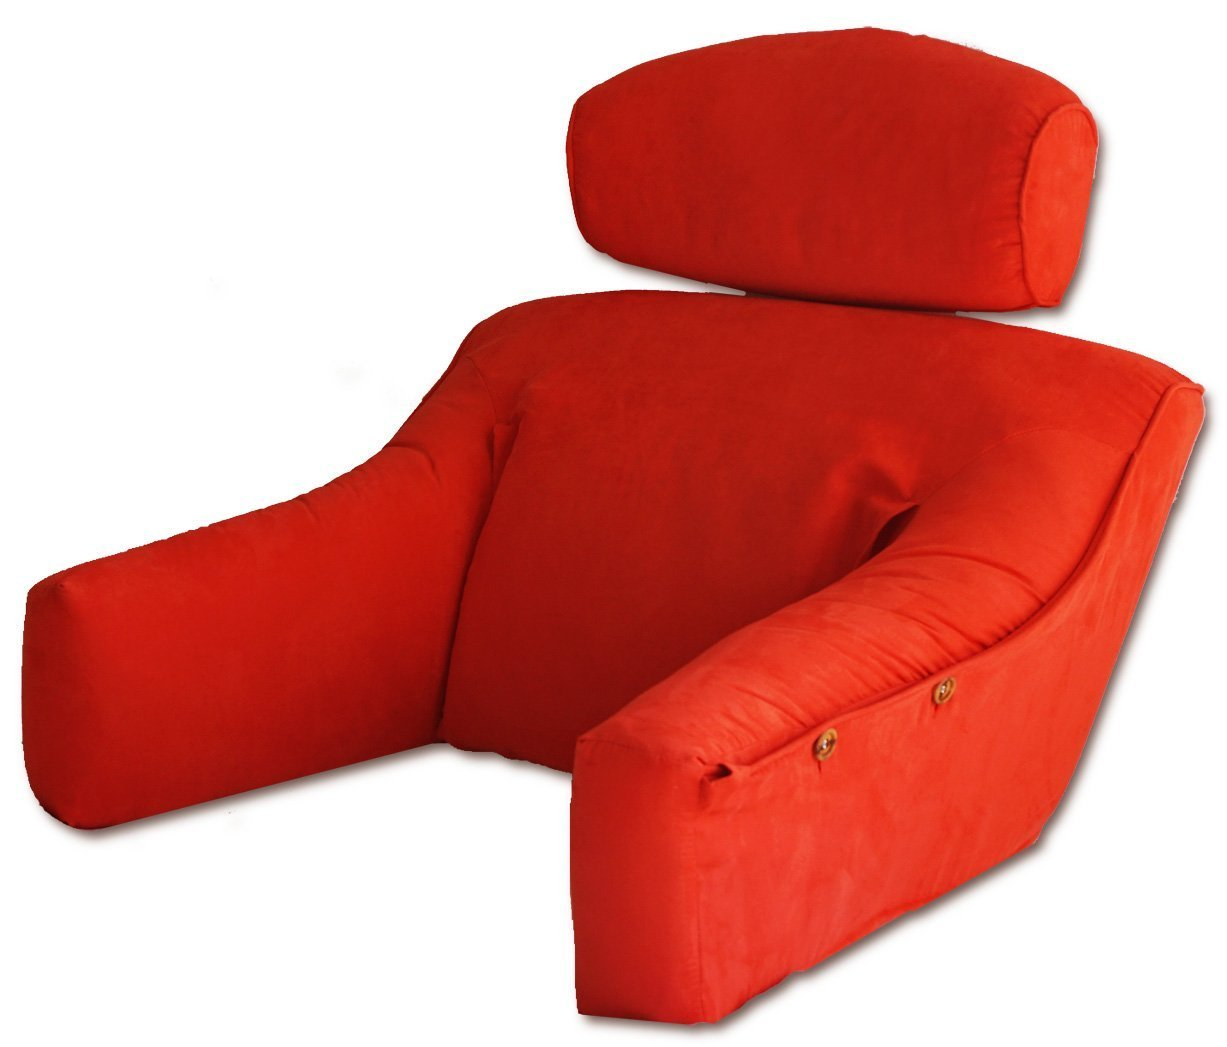 Vibrant Red Premium MicroSuede Bedlounge Reading Pillow - Reading in Bed, for Deep Couches, Watching TV and Reading to Children. REGULAR SIZE